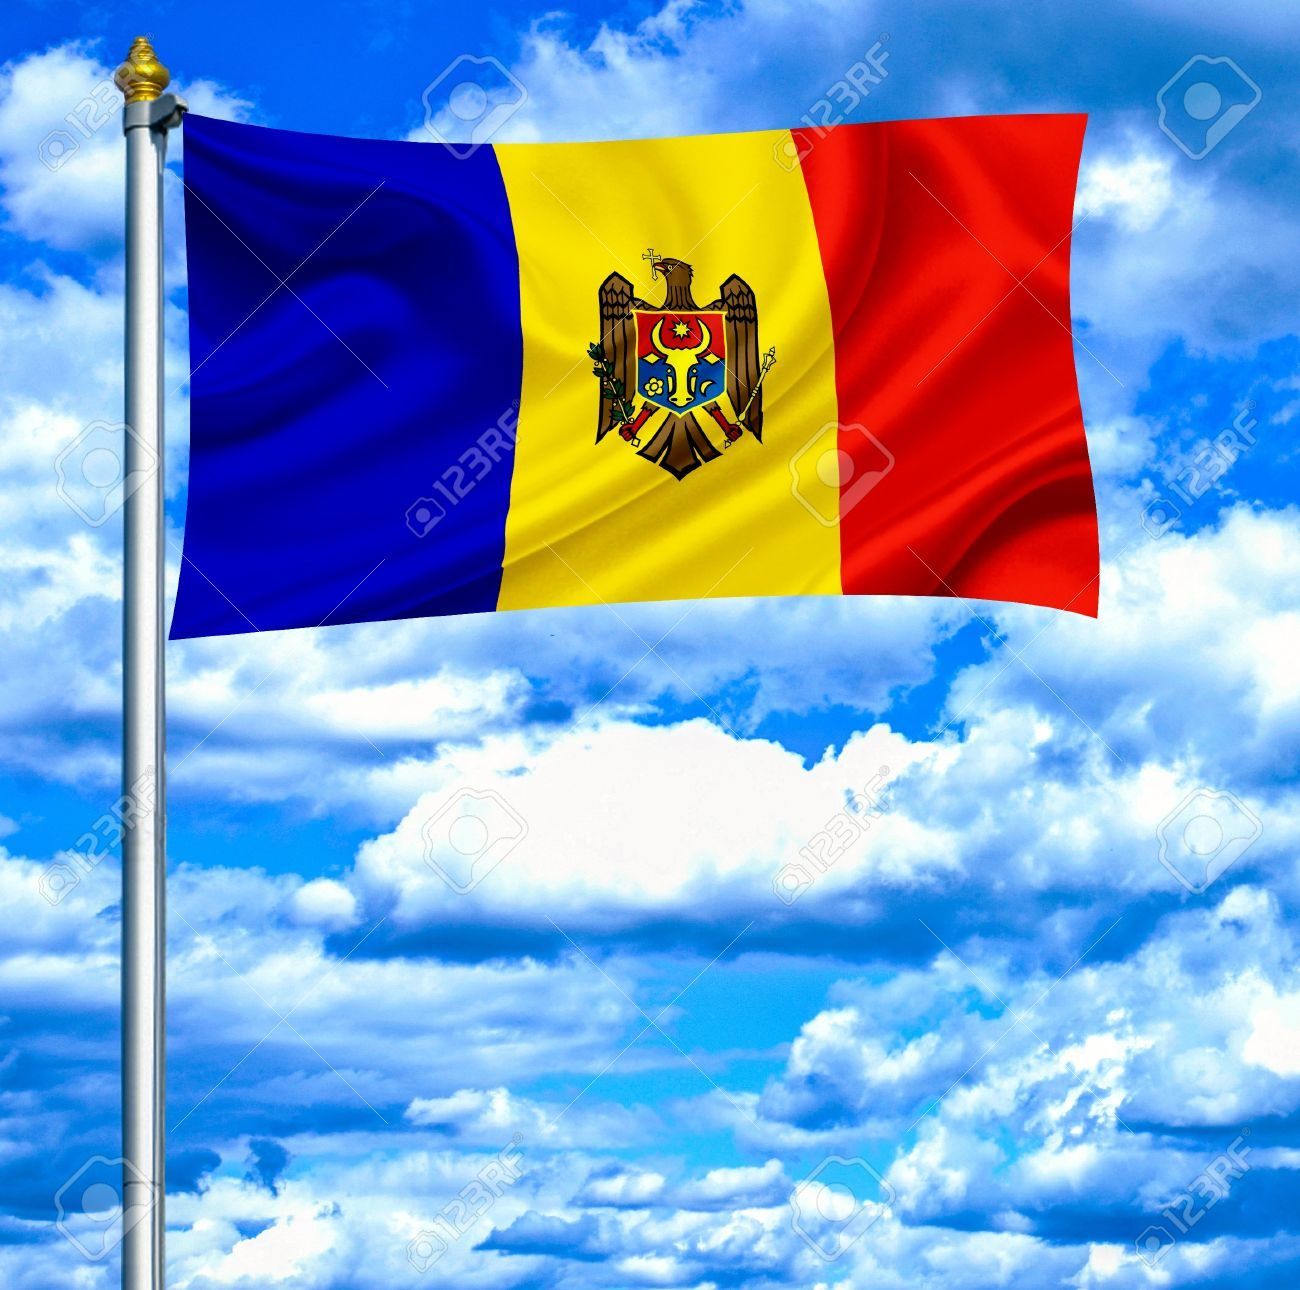 REQUEST FROM THE ASSOCIATION OF MOLDOVA TO BECOME A FEPA MEMBER